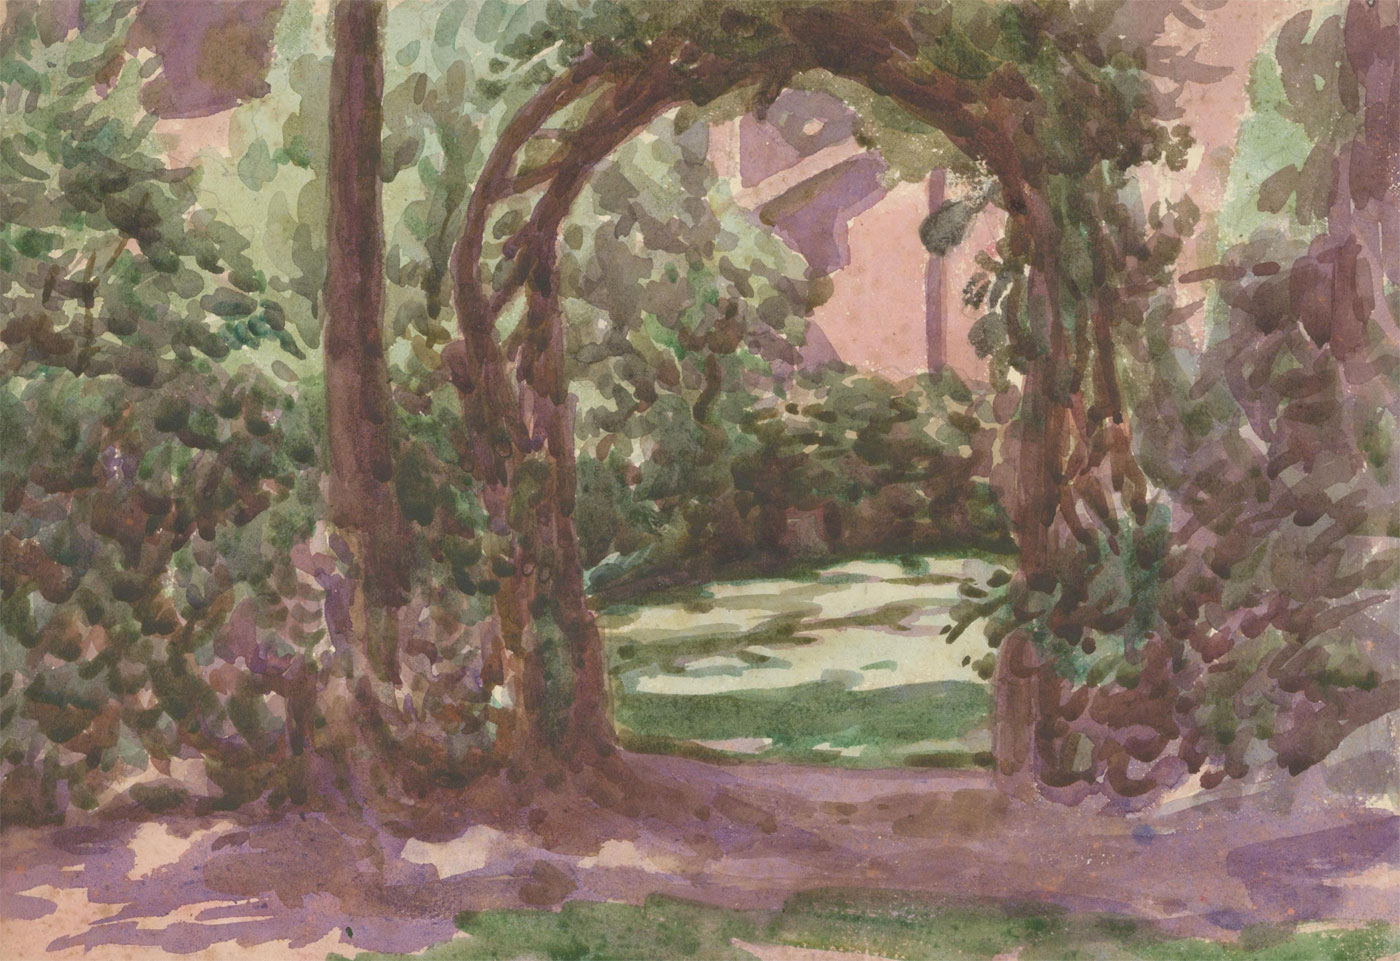 Harold Hope Read (1881-1959) - Early 20th Century Watercolour, The Garden Gate